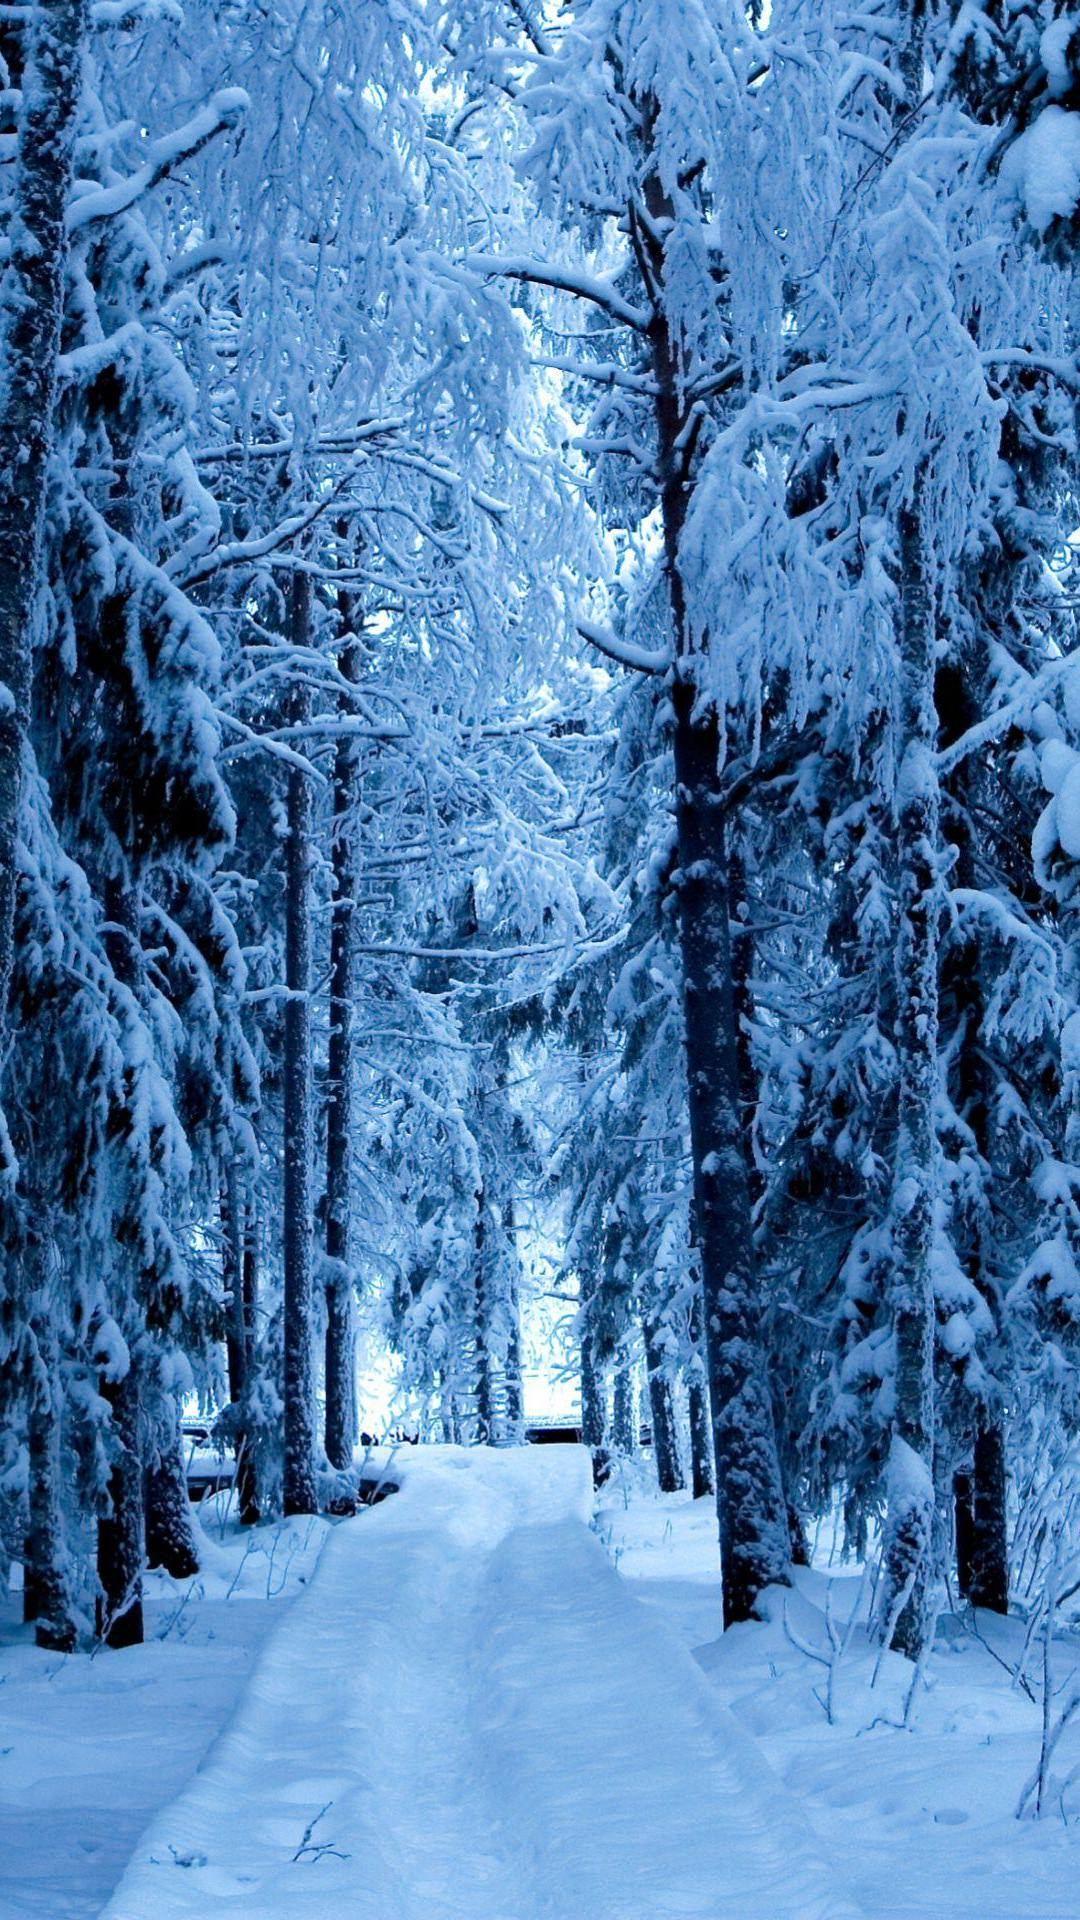 Falling Snow Live Wallpaper For Pc Tree Lined Landscape Snow Wallpaper Sc Smartphone